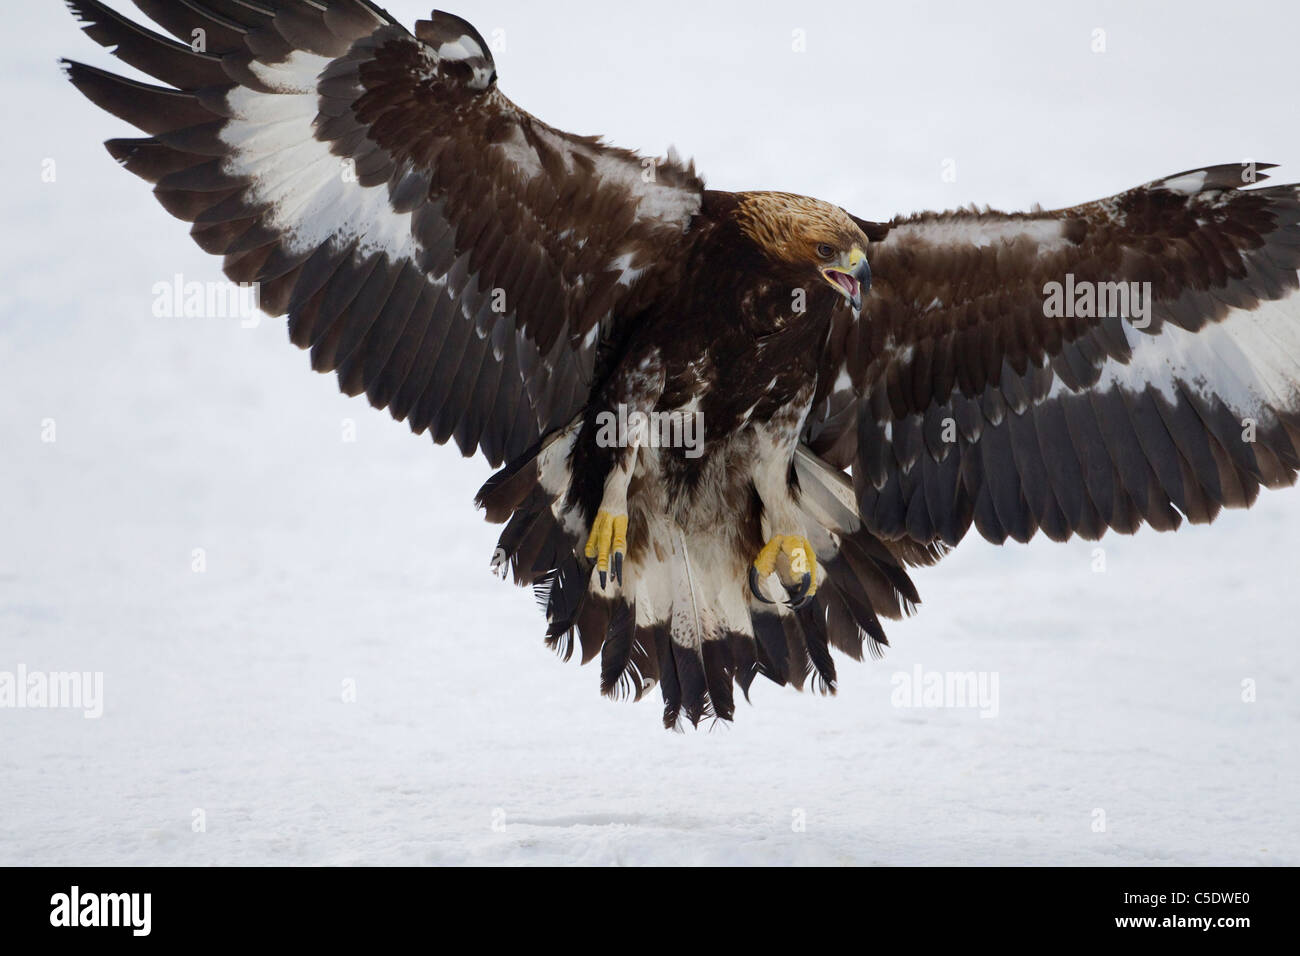 Extreme close-up of a golden eagle with spread wings in flight over snowed landscape - Stock Image